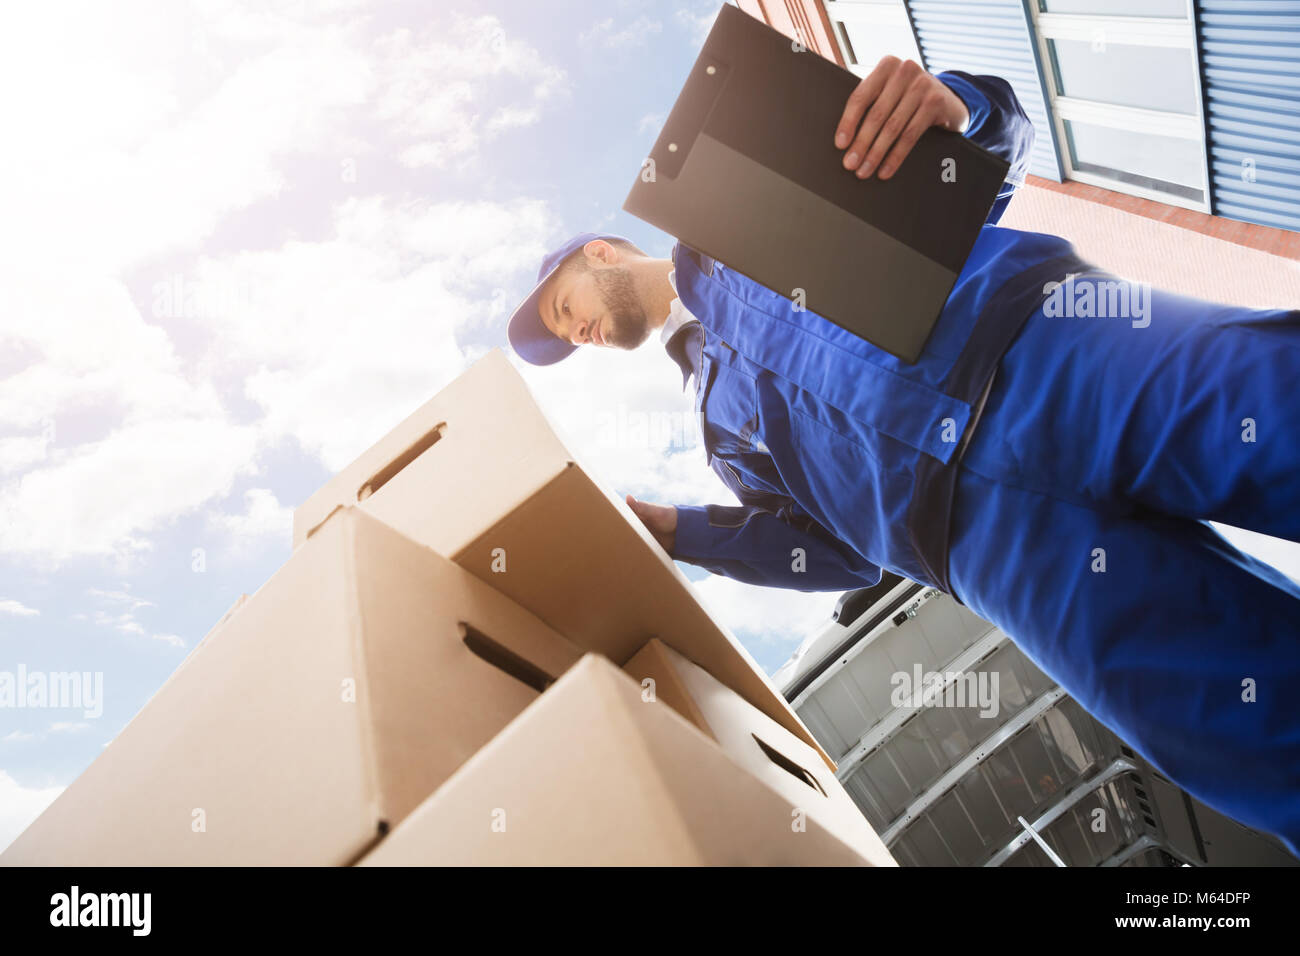 Low Section Of Young Male Worker Standing Near Cardboard Box Holding Clipboard - Stock Image